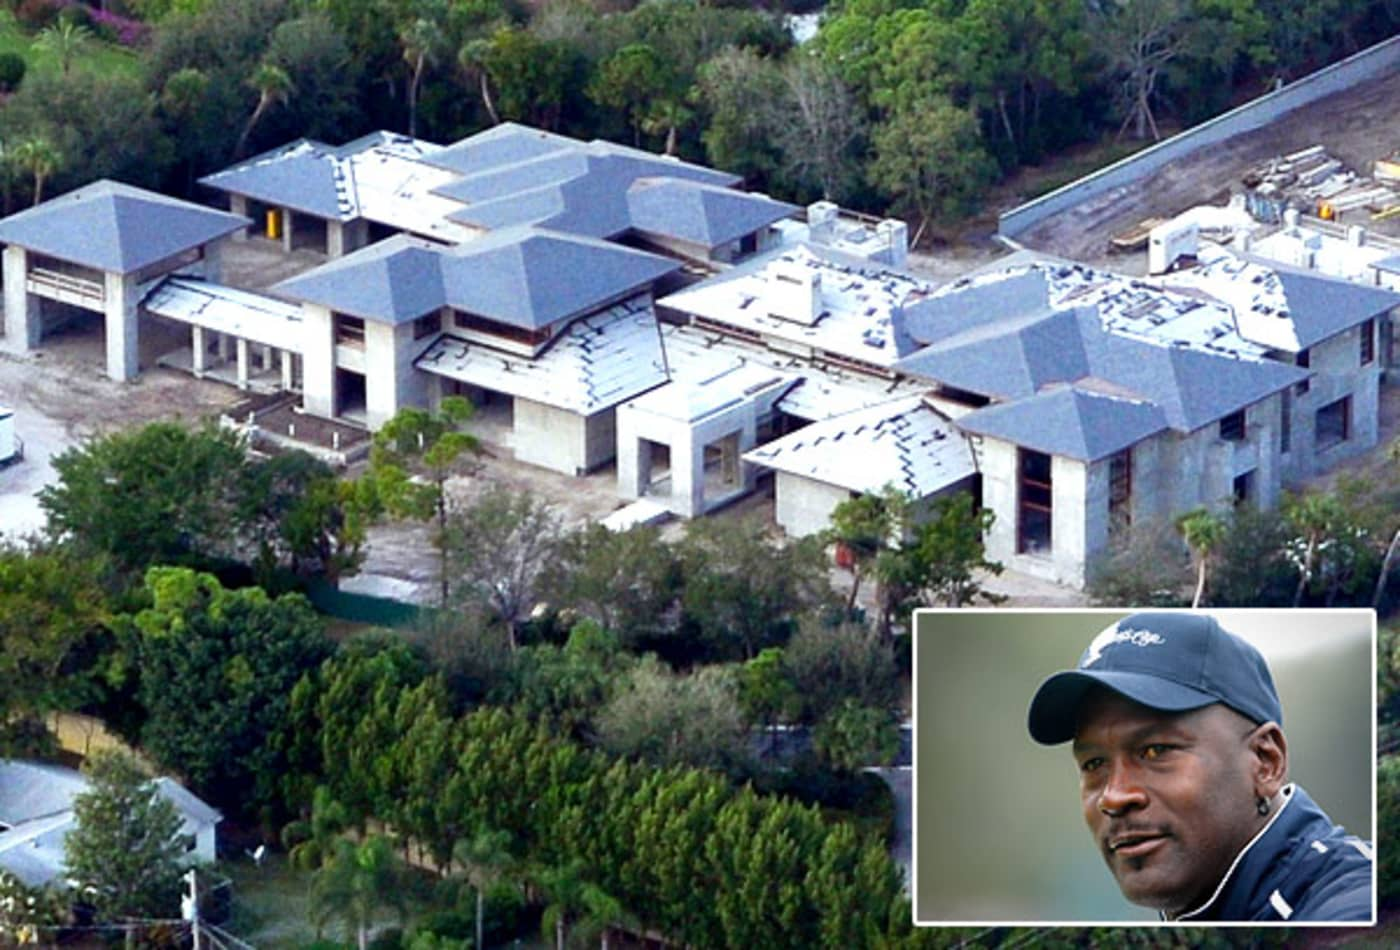 Michael-Jordan-Homes-of-NBA-Stars-CNBC.jpg